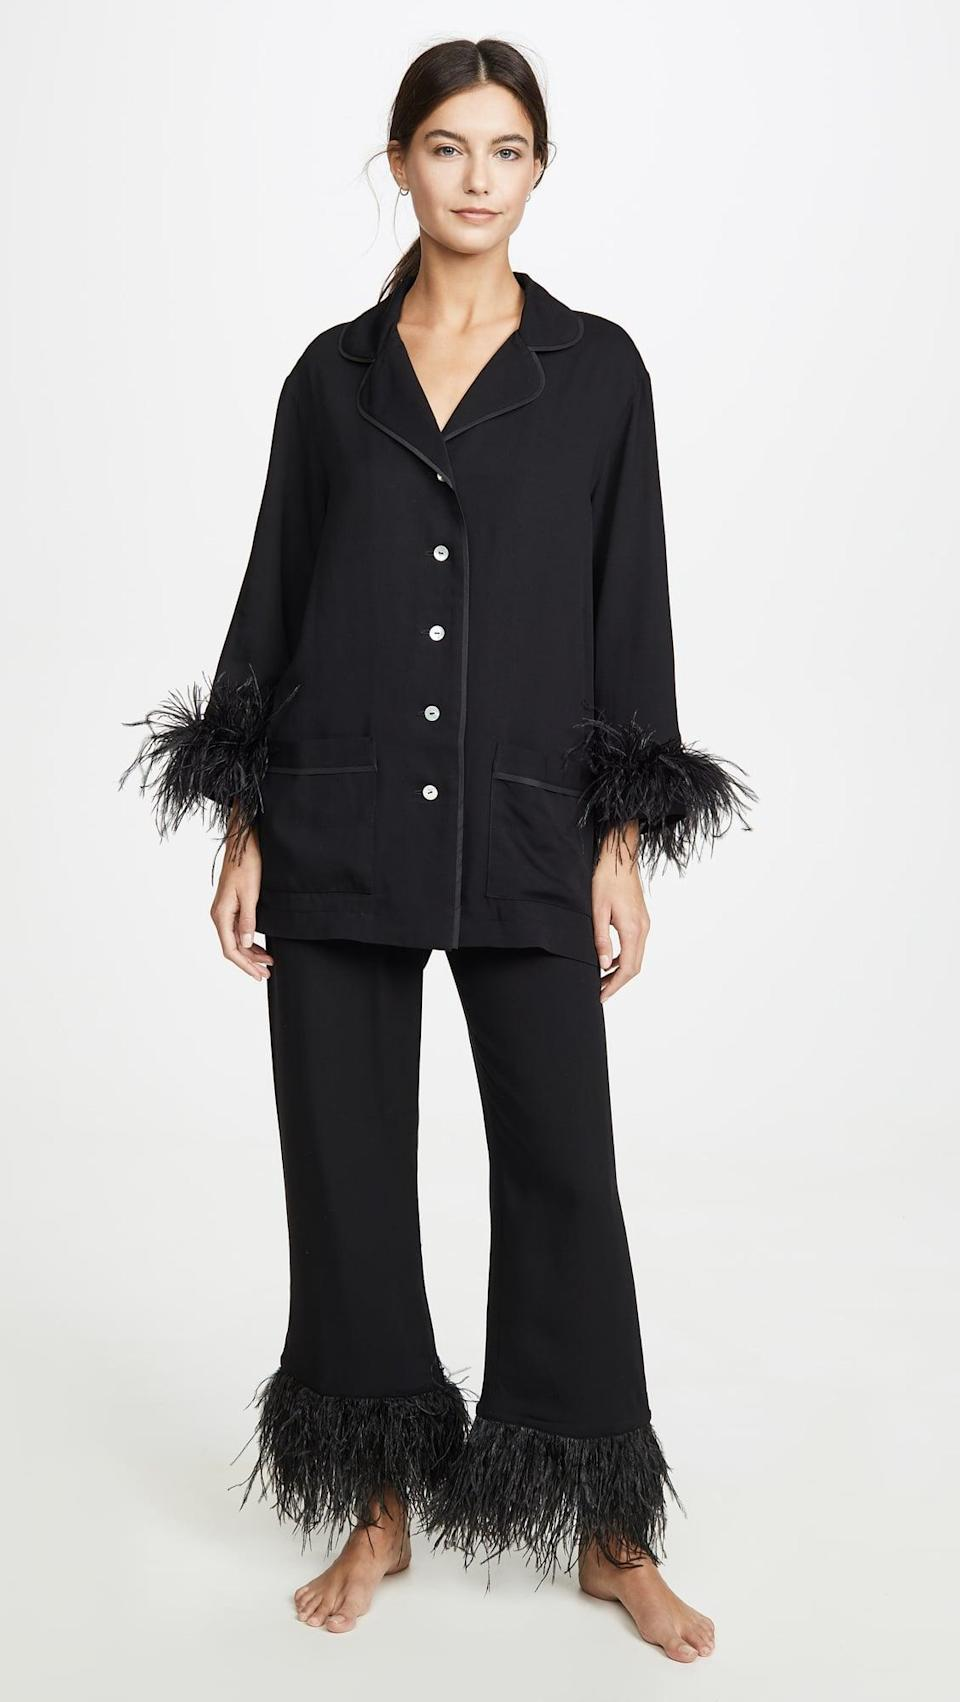 <p>We all know someone who needs this <span>Sleeper Party PJ Set With Feathers</span> ($290). It's so fun and festive, and while it comes in a myraid of colors, the black is always a good idea.</p>